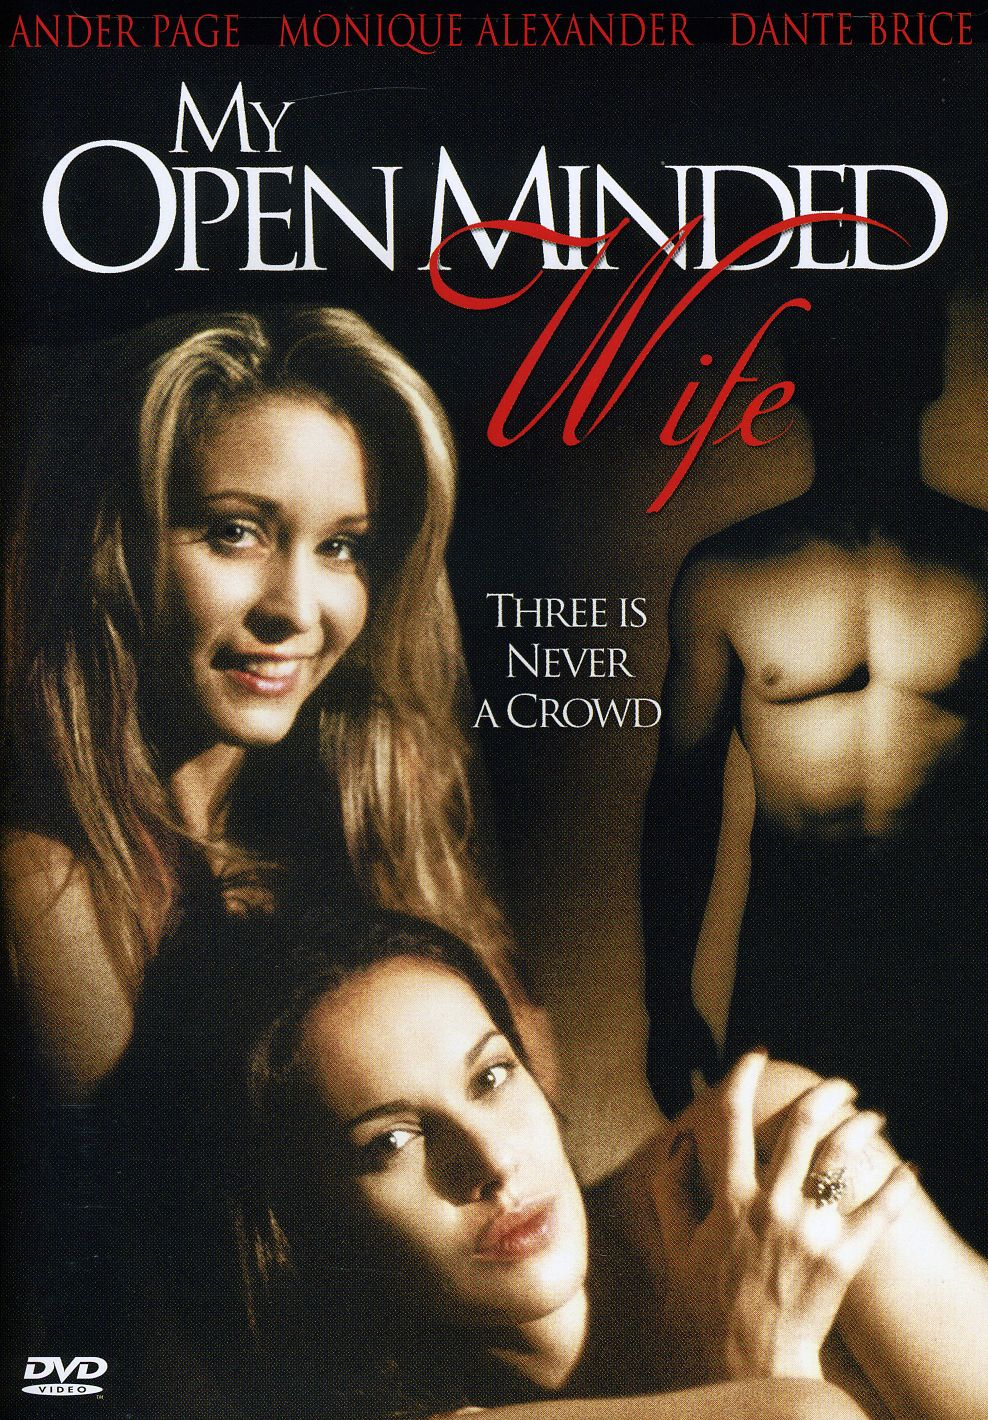 My Open Minded Wife (DVD)